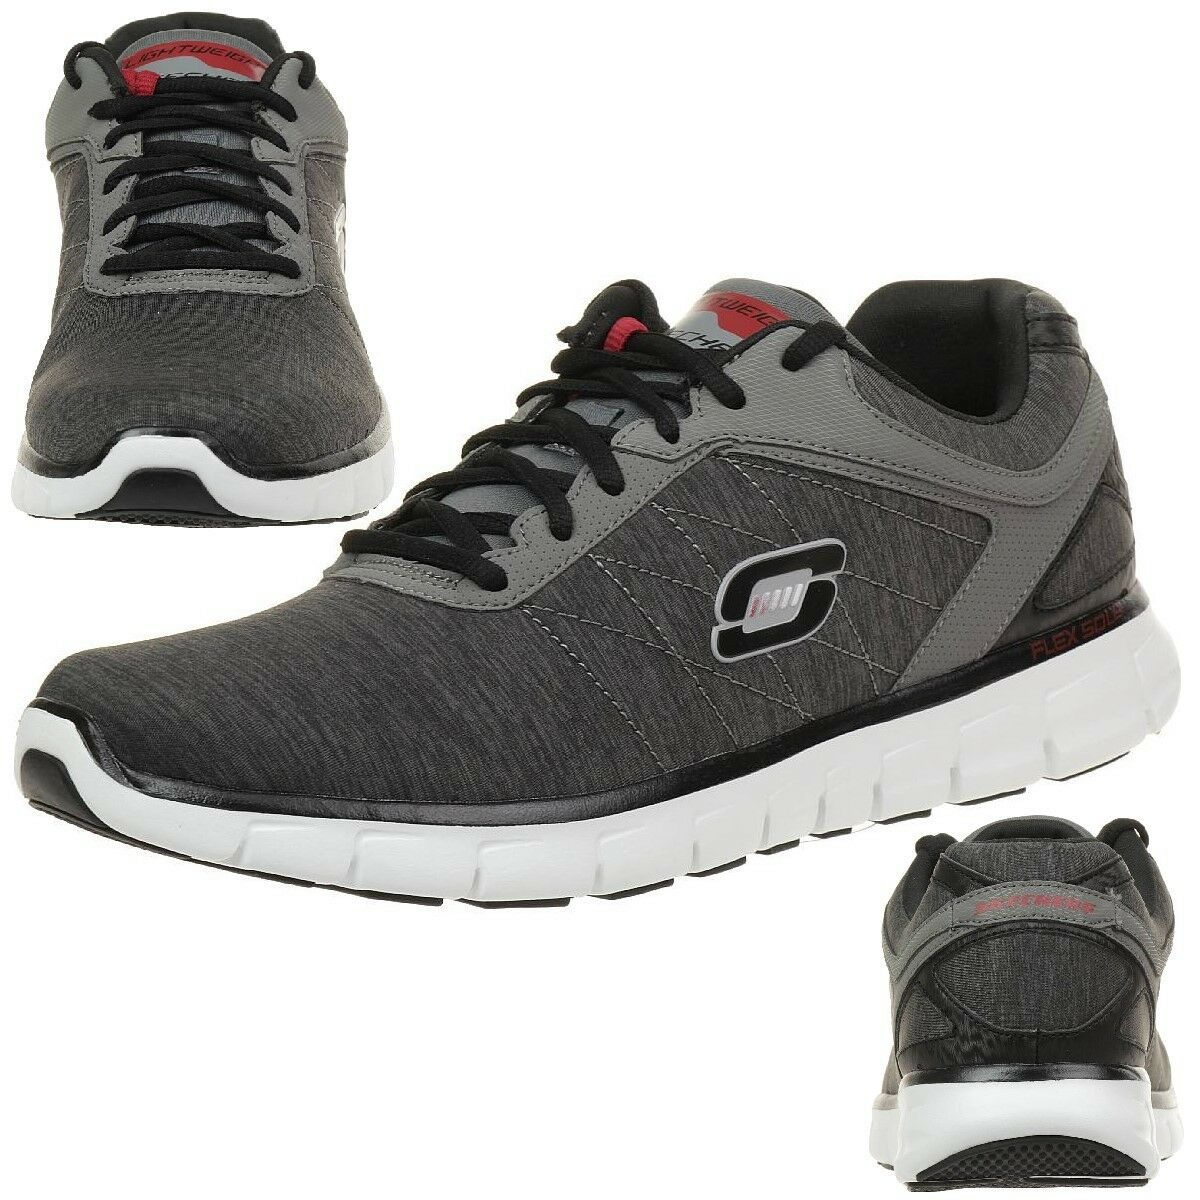 Skechers Synergy Instant Reaction Herren Sneaker Fitness Schuhe grey Lightwight